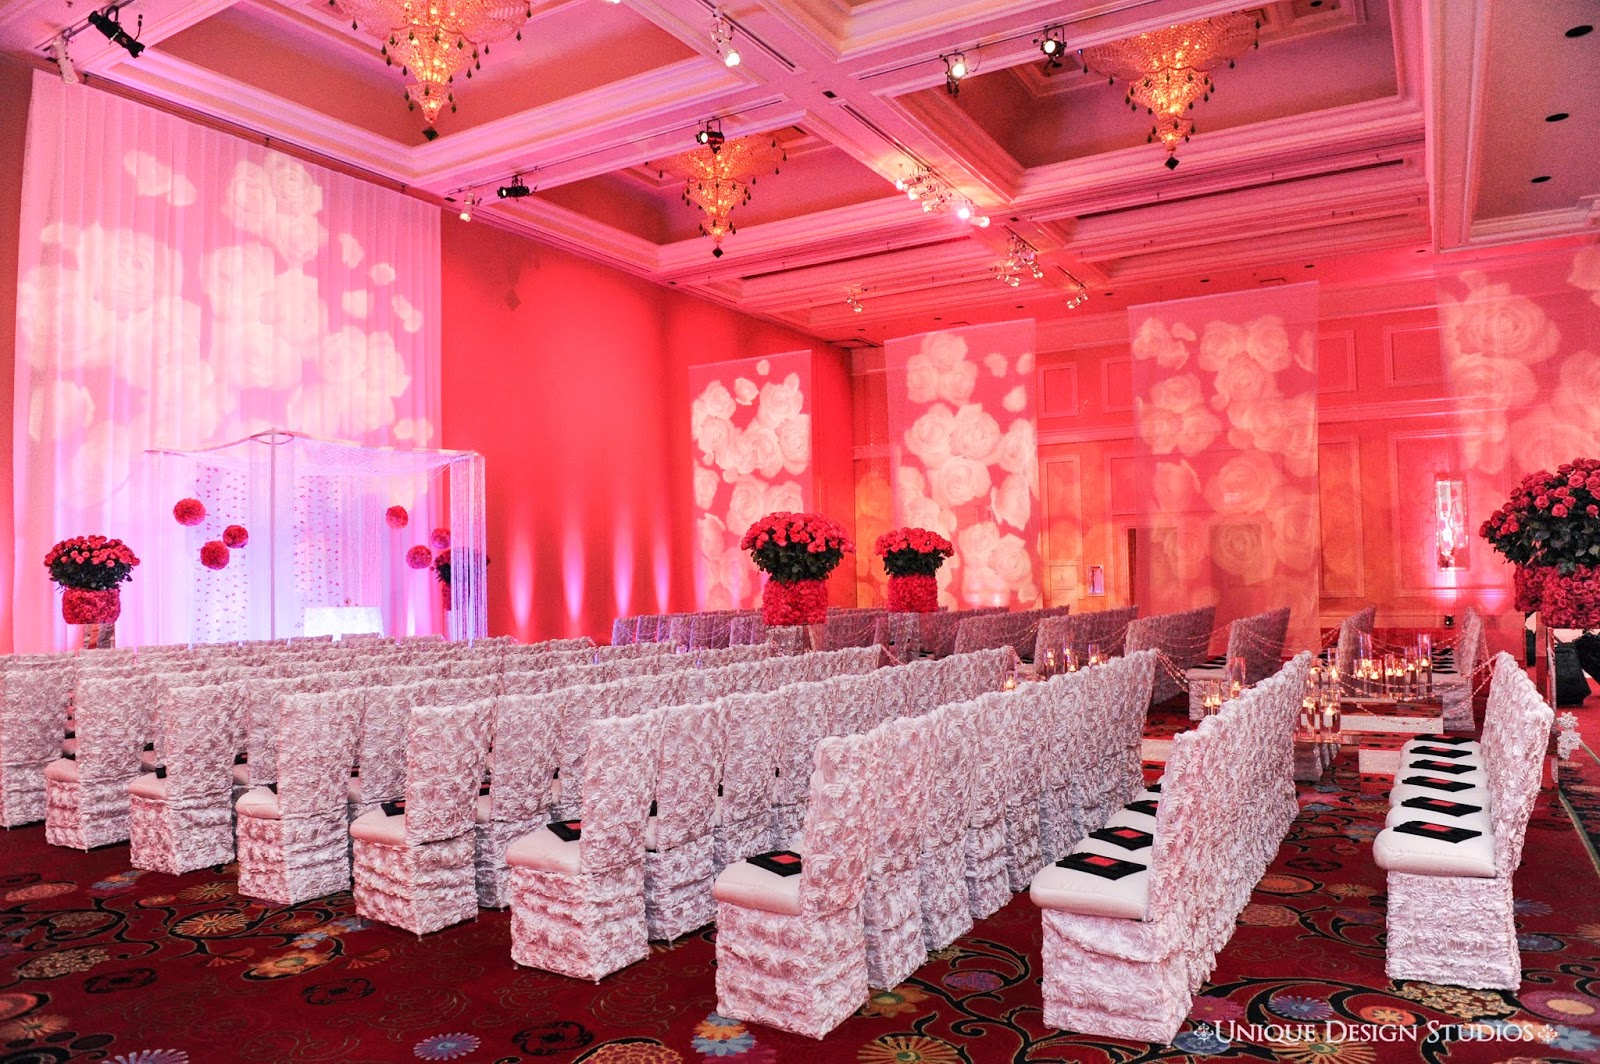 Wedding Ceremony Design Decor Of Platinum Roses Bling By Tiffany Cook For This Destination At The Encore Las Vegas Dream